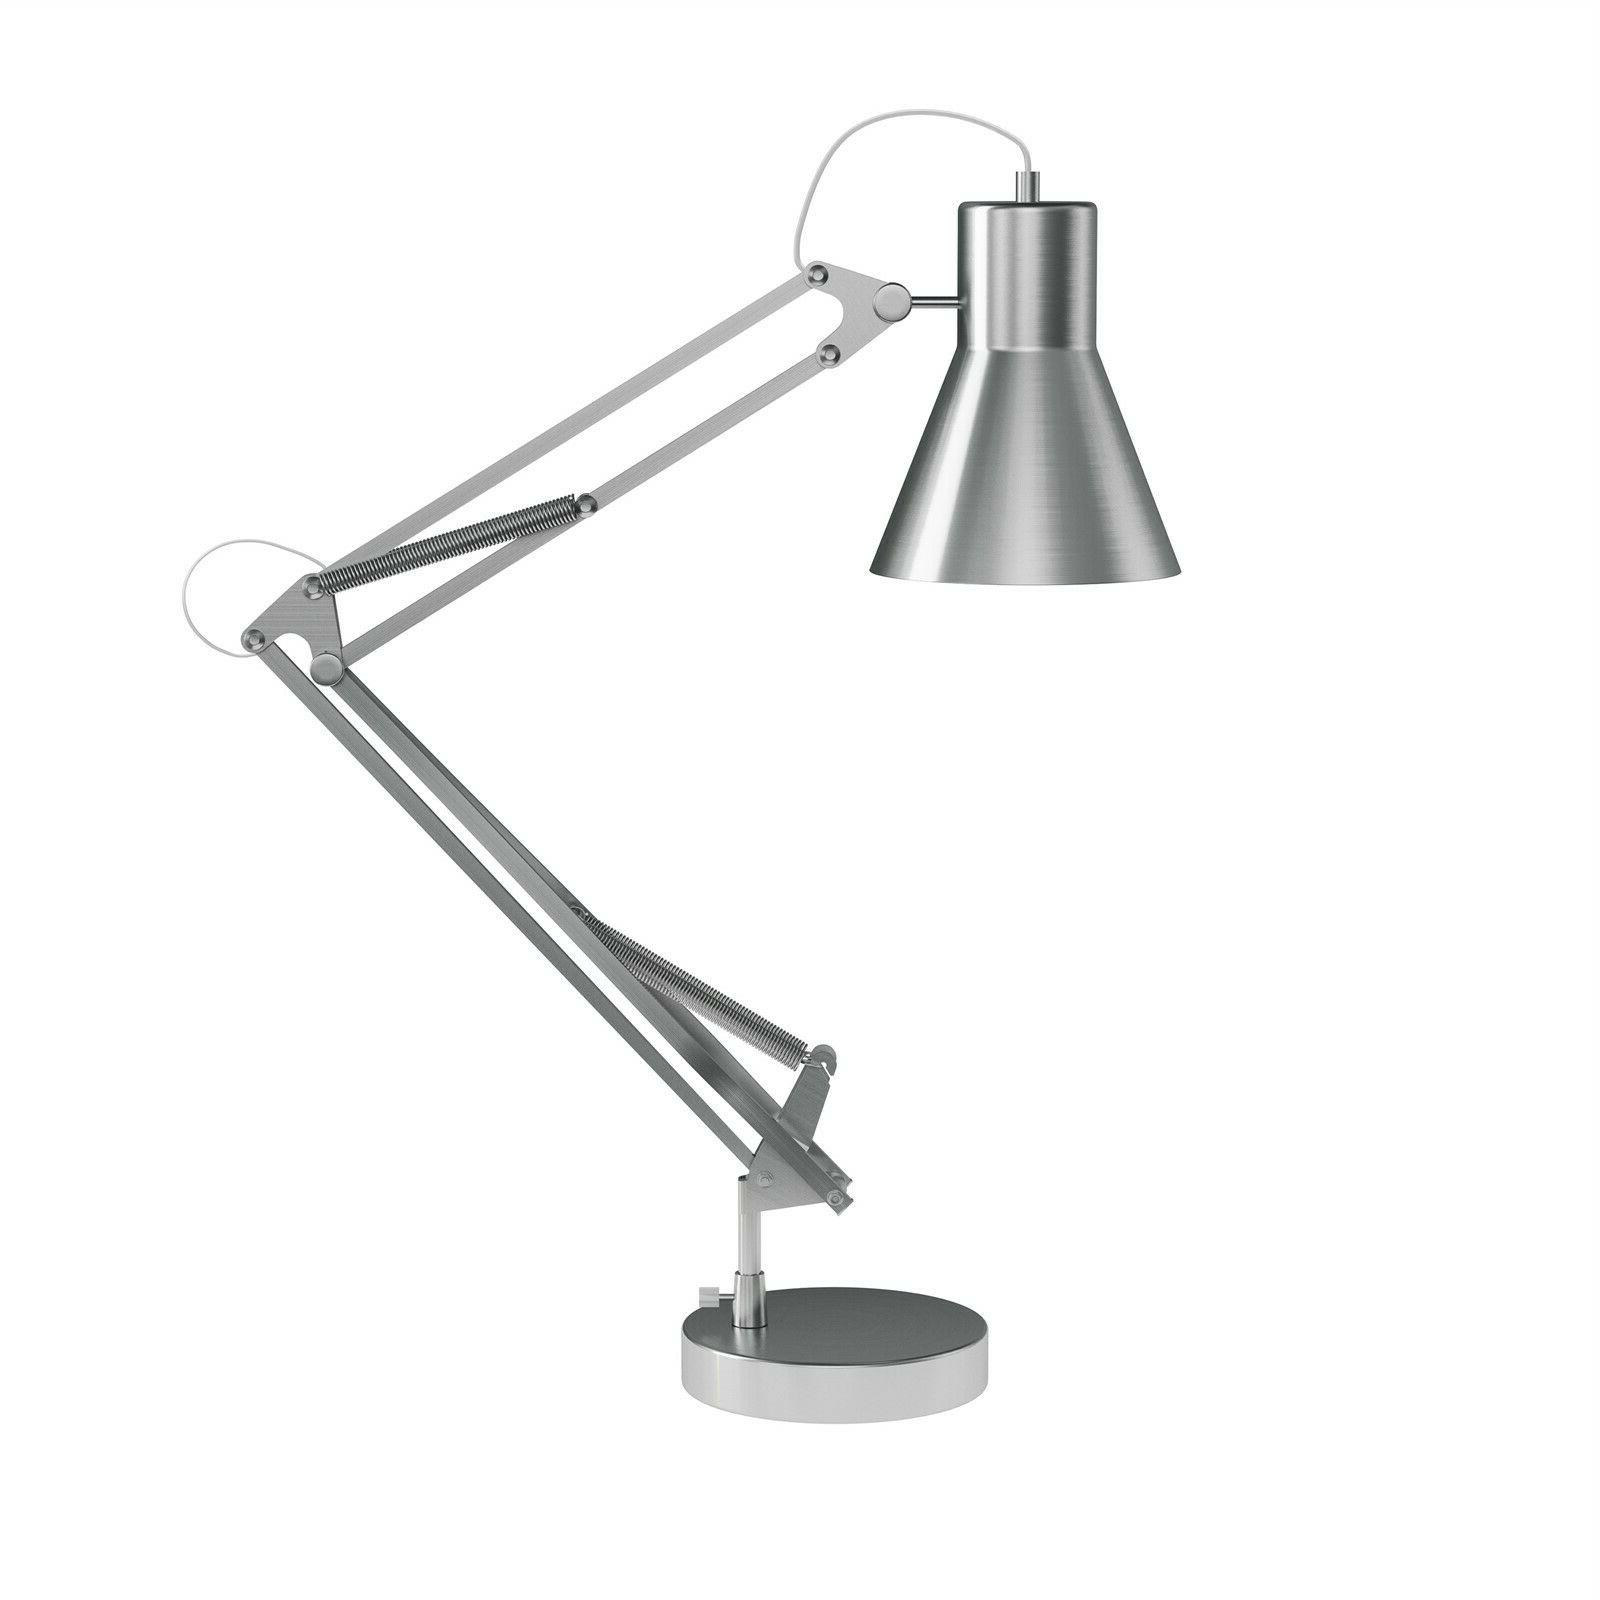 Architect Desk Lamp Adjustable Swing Arm Table Light Bright